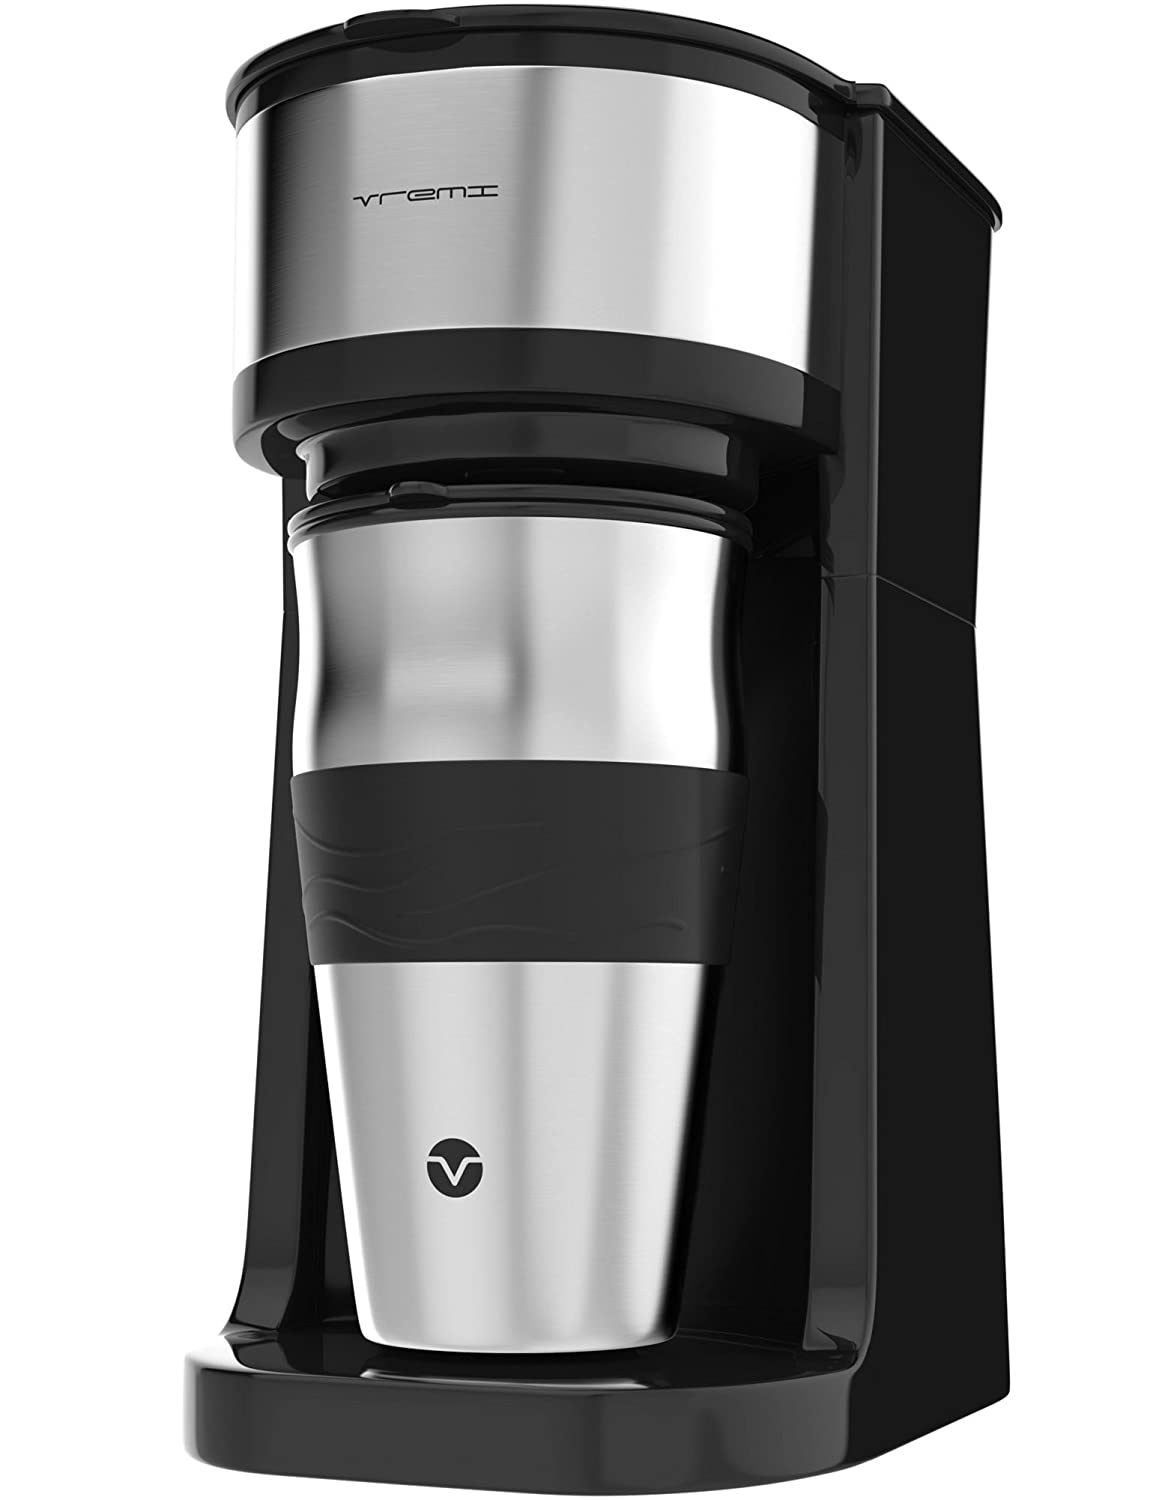 Vremi Single Cup Coffee Maker - includes 14 oz Travel Coffee Mug and Reusable Filter - Personal 1 Cup Drip Coffee Maker to Brew Ground Beans - Black and Silver Single Serve One Cup Coffee Dripper VRM010046N